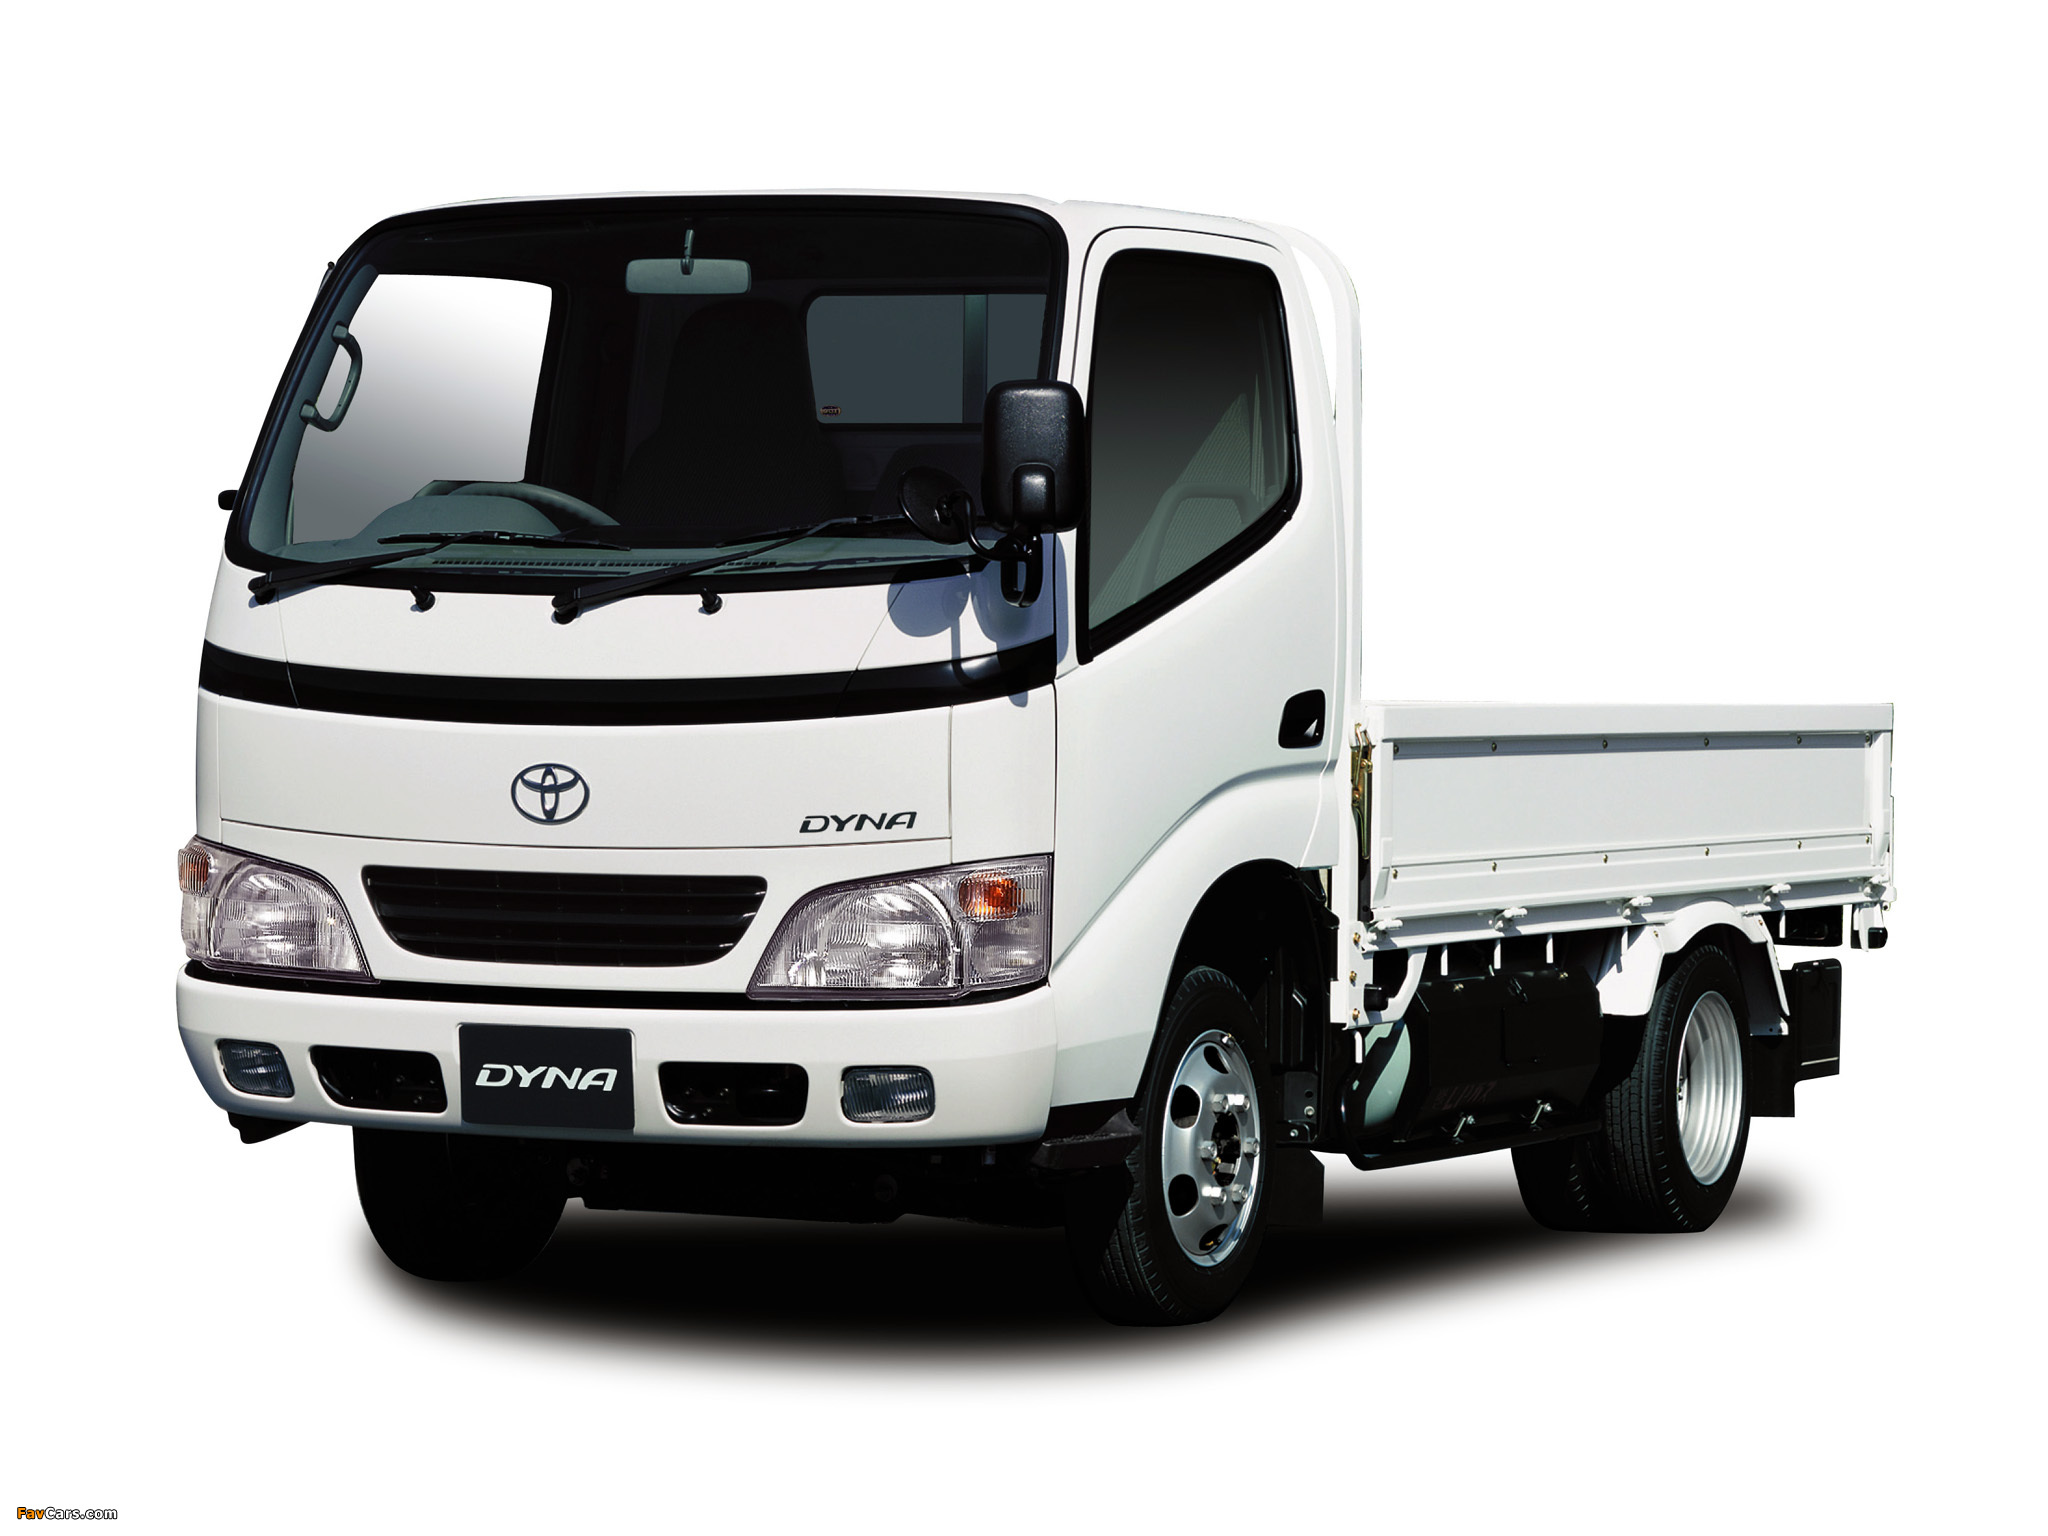 TOYOTA DYNA - Review and photos